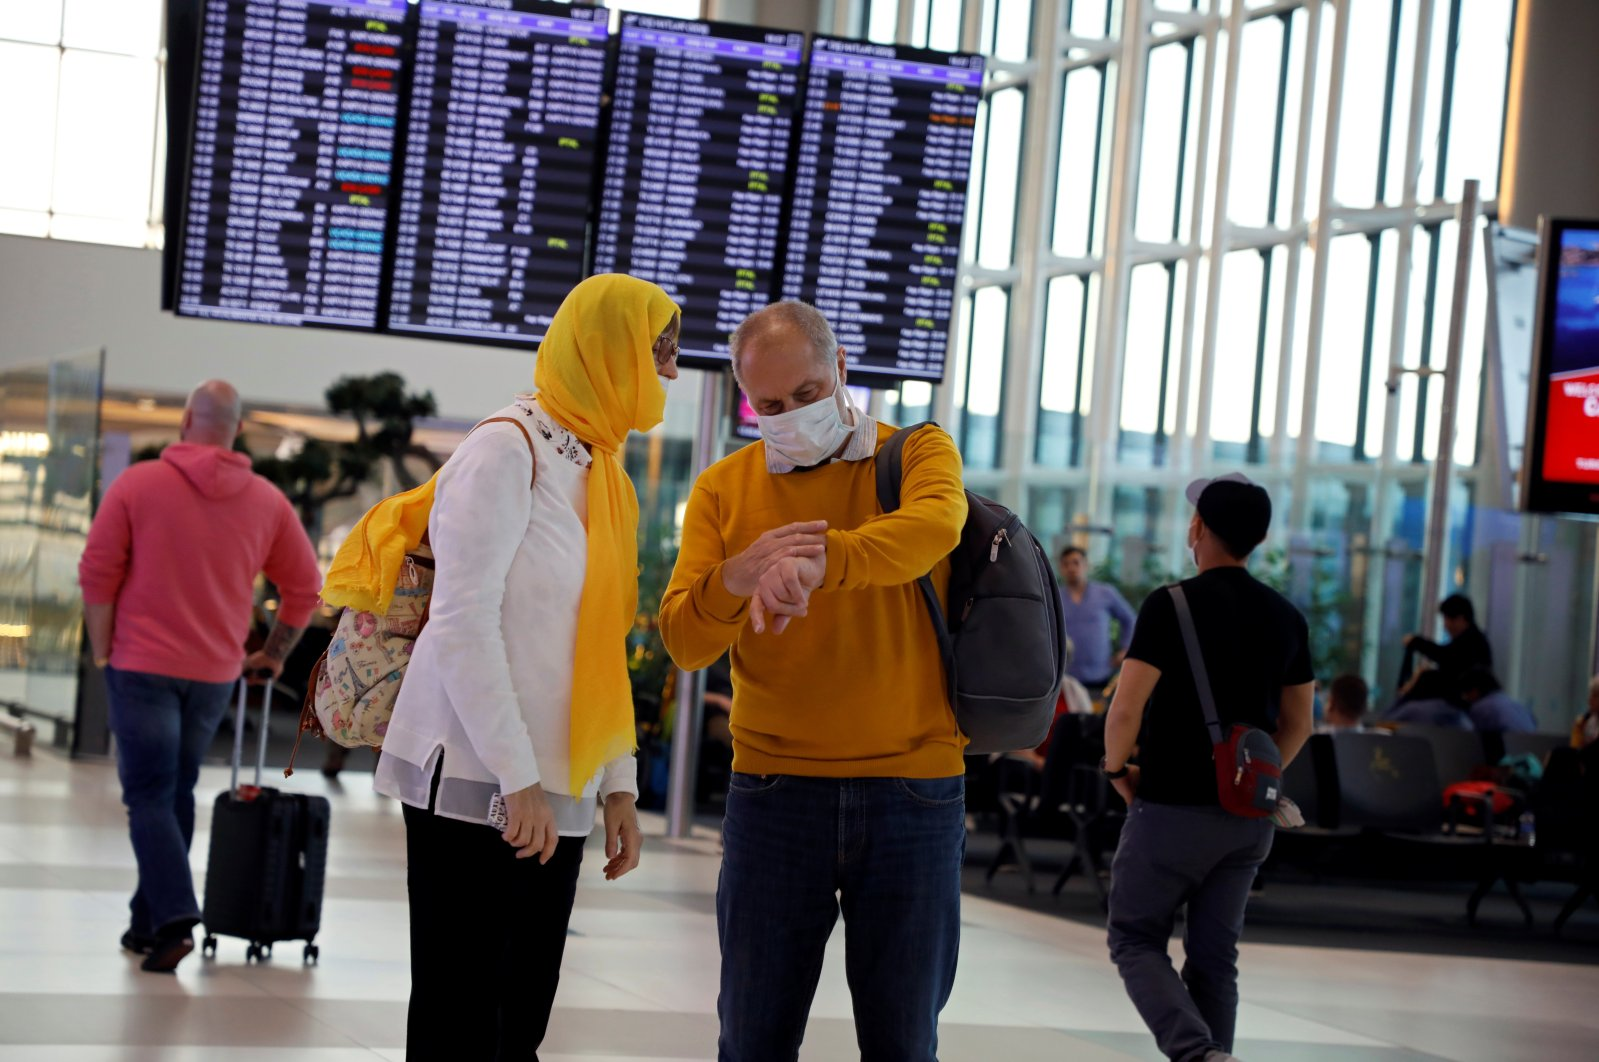 People wear protective face masks in light of the coronavirus pandemic, at Istanbul Airport, Istanbul, Turkey, March 13, 2020. (Reuters Photo)